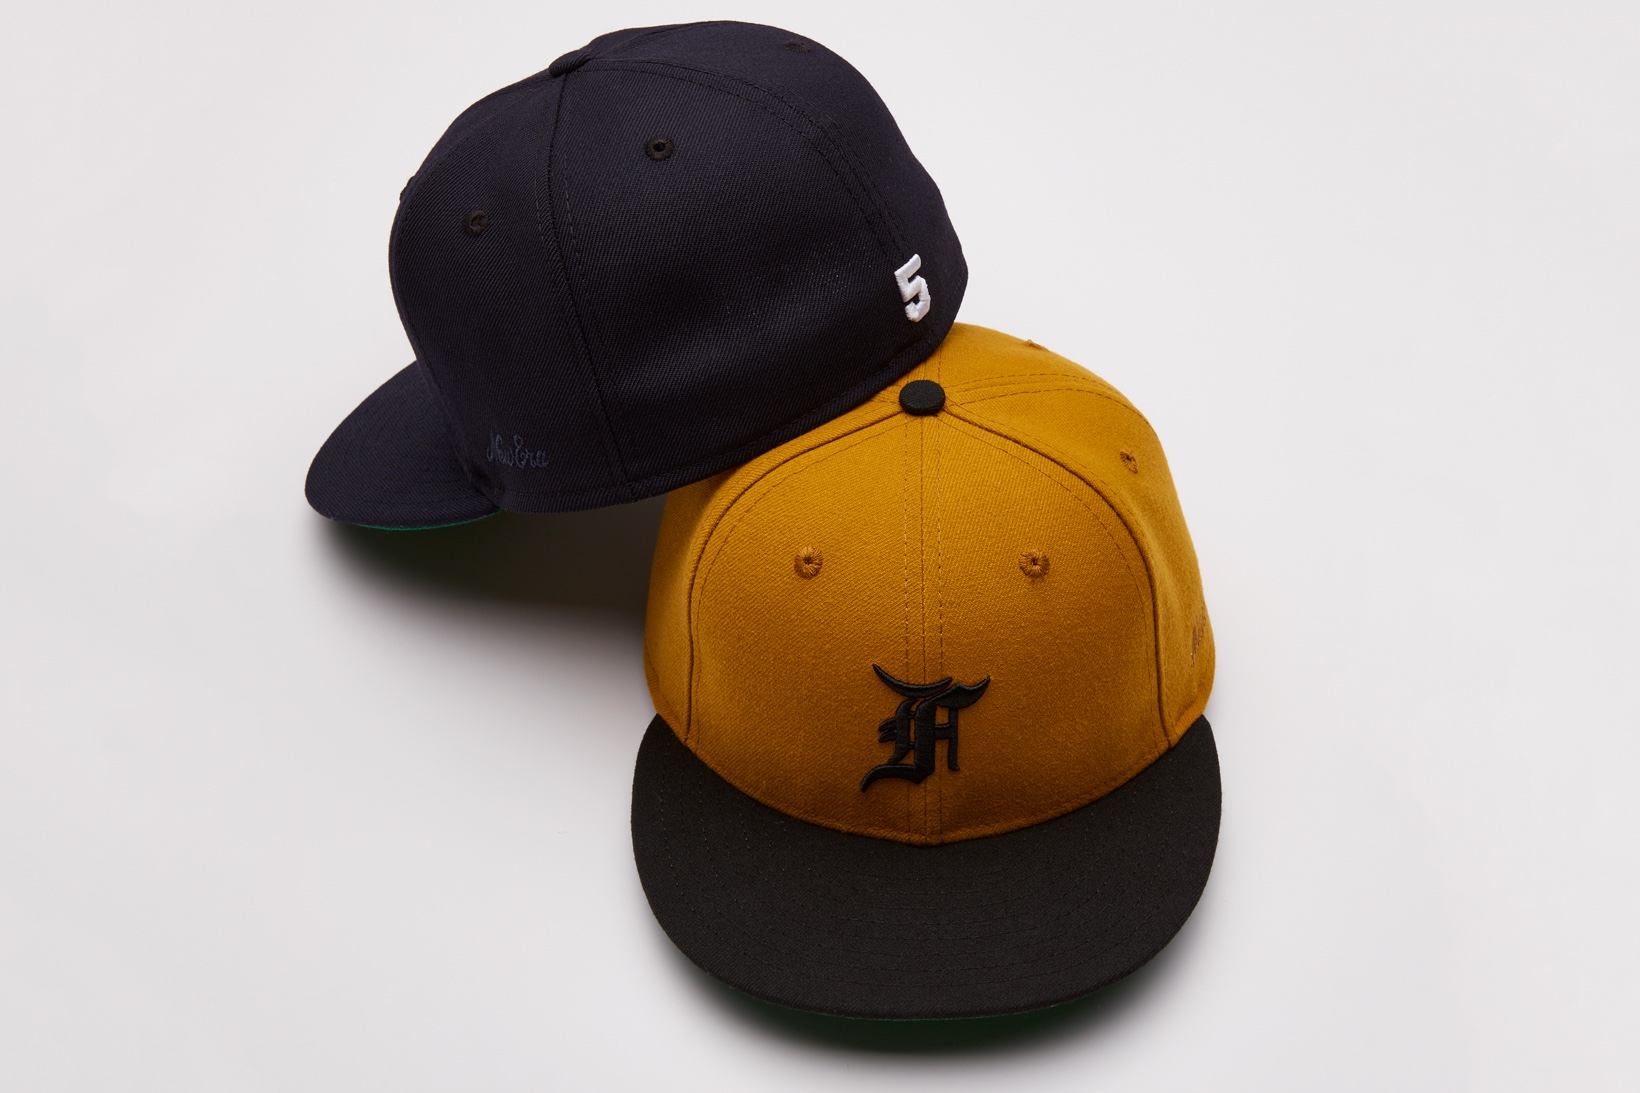 862bdc2c9ca Fear of God x New Era Unveil Fitted Cap Collection